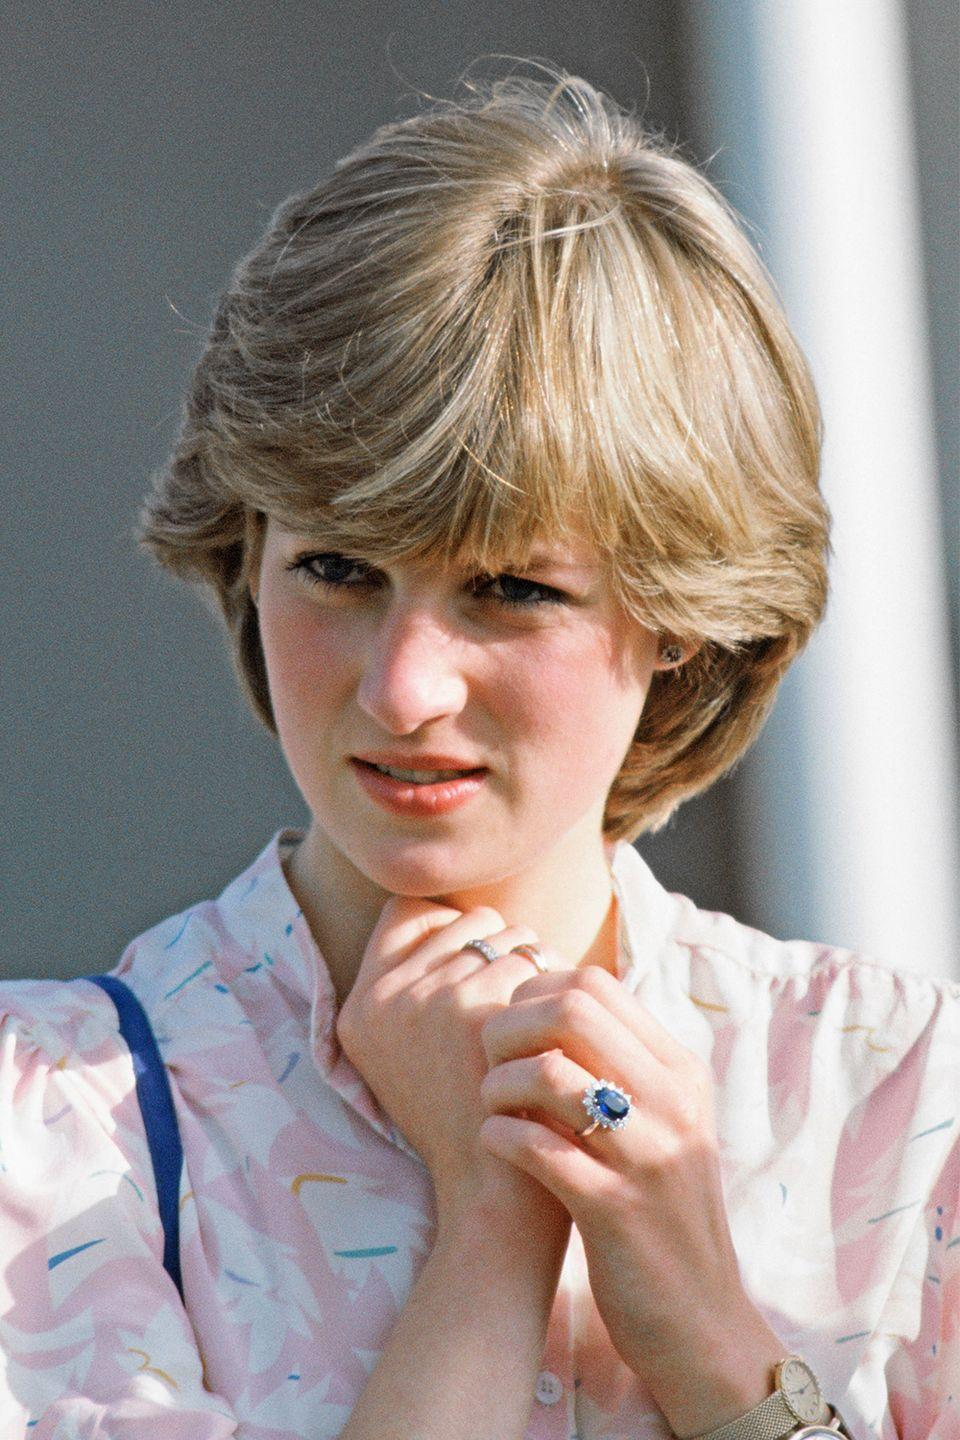 <p>Rather than creating a custom design or picking an heirloom piece, Lady Diana ordered her engagement ring straight from a Garrad's jewelry collection in 1981 (a.k.a. it was totally available to the public). The sapphire ring now sits on Kate Middleton's finger. </p>